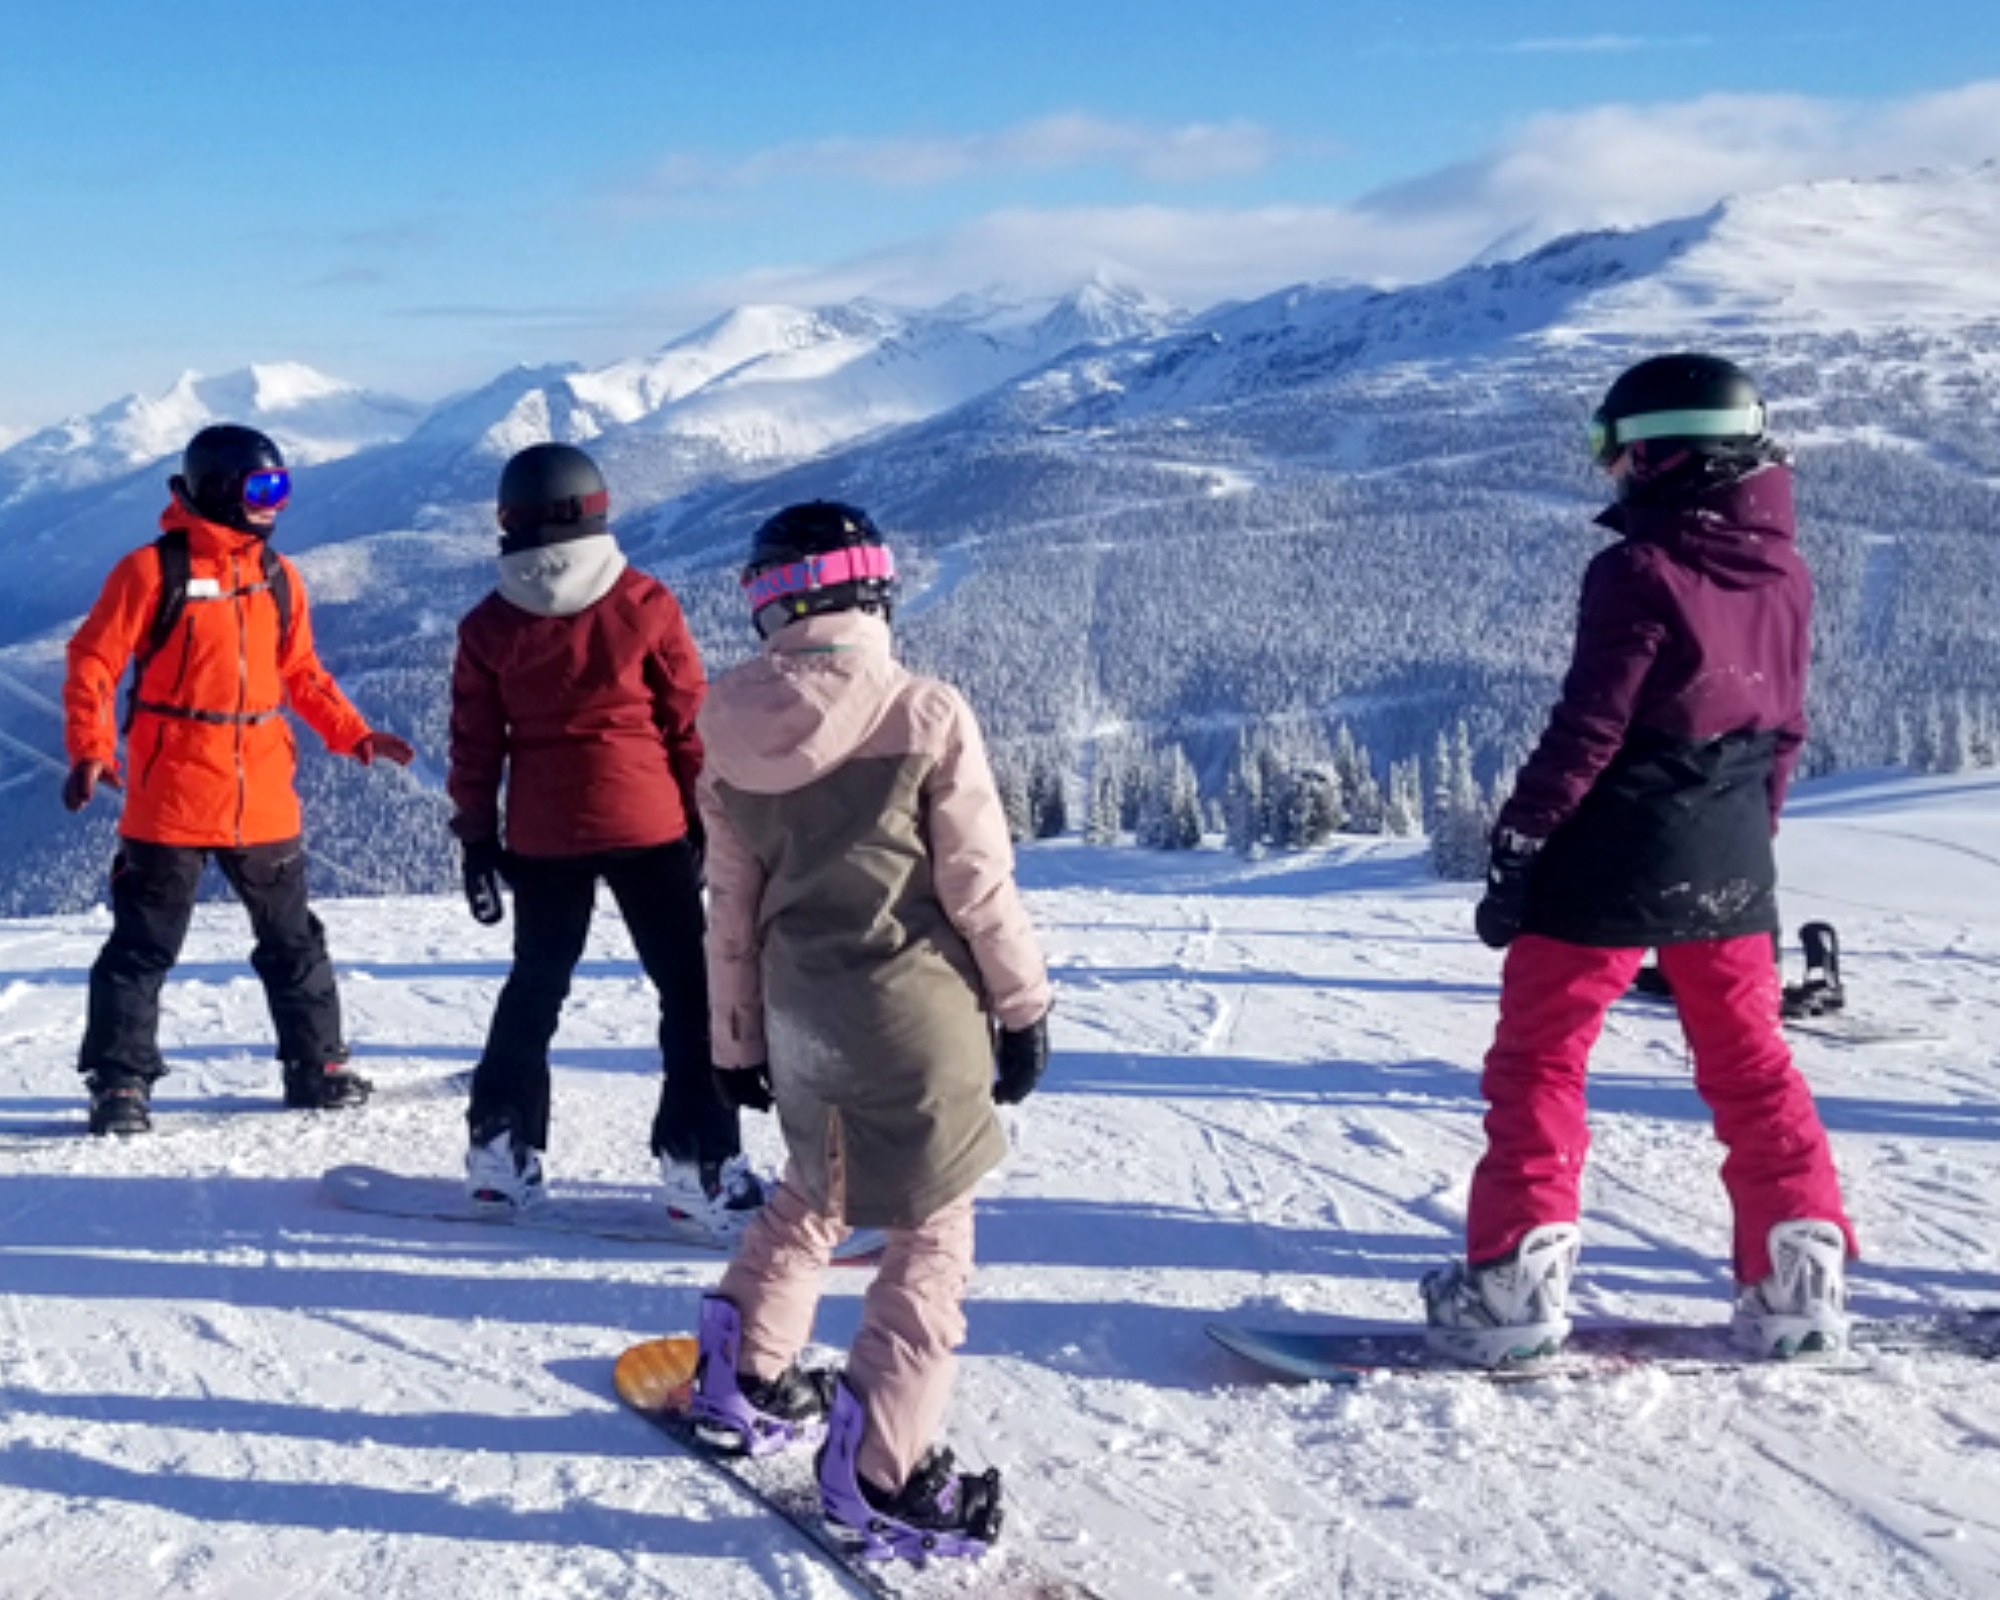 Teen Ski and Snowboard Camp in Whistler Canada